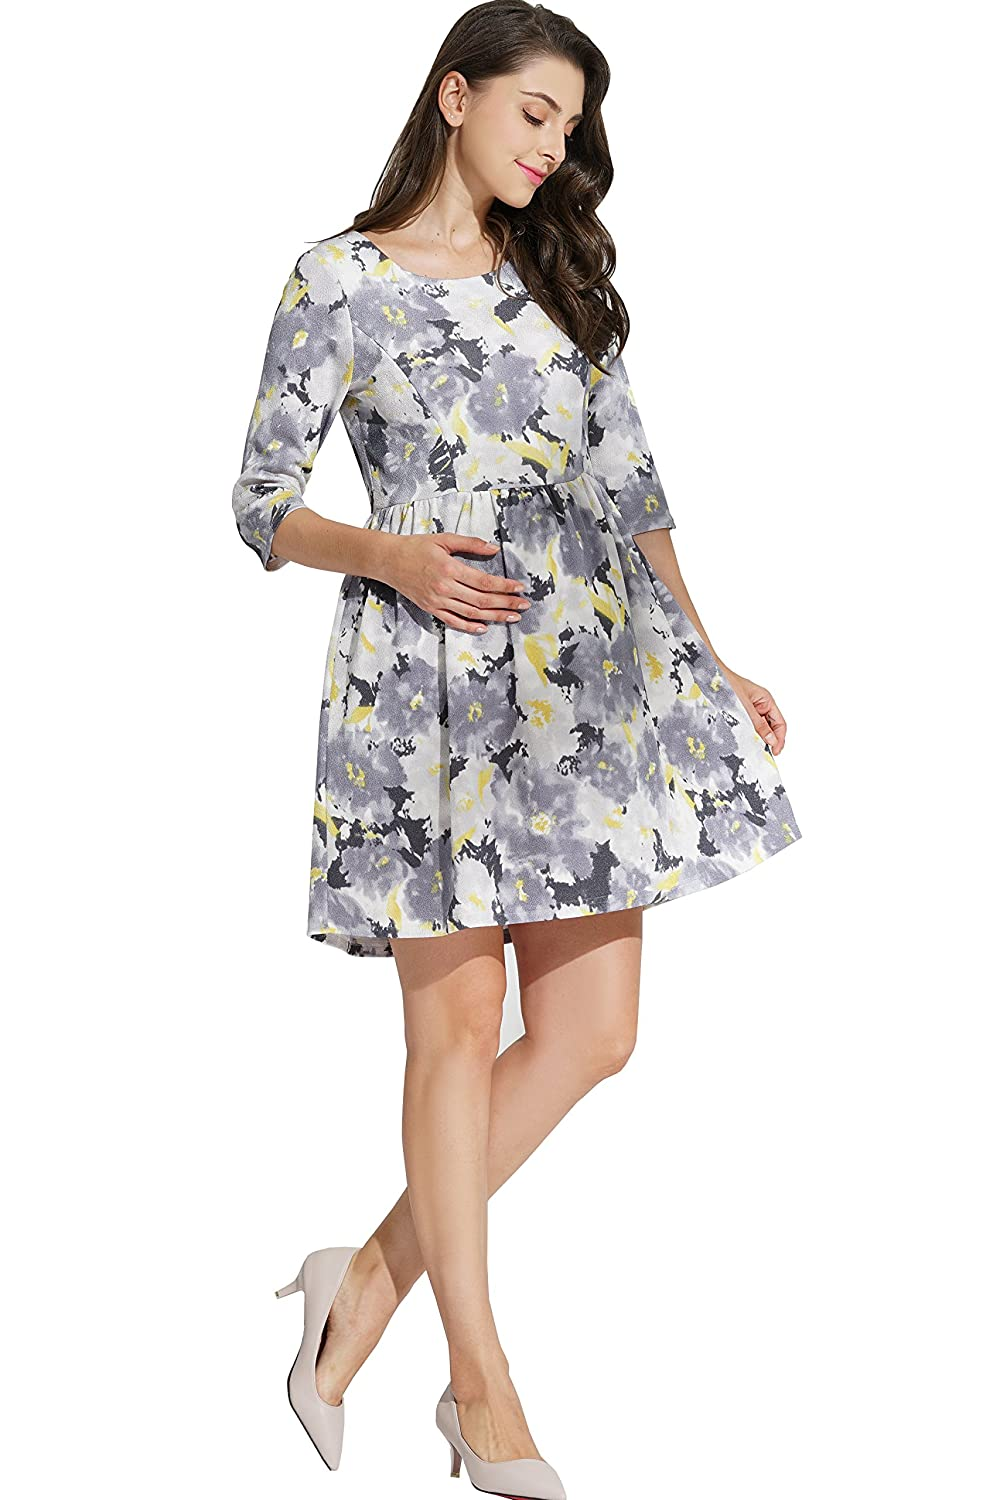 Sweet Mommy Maternity and Nursing Floral Print Baby Shower Party Dress co7090